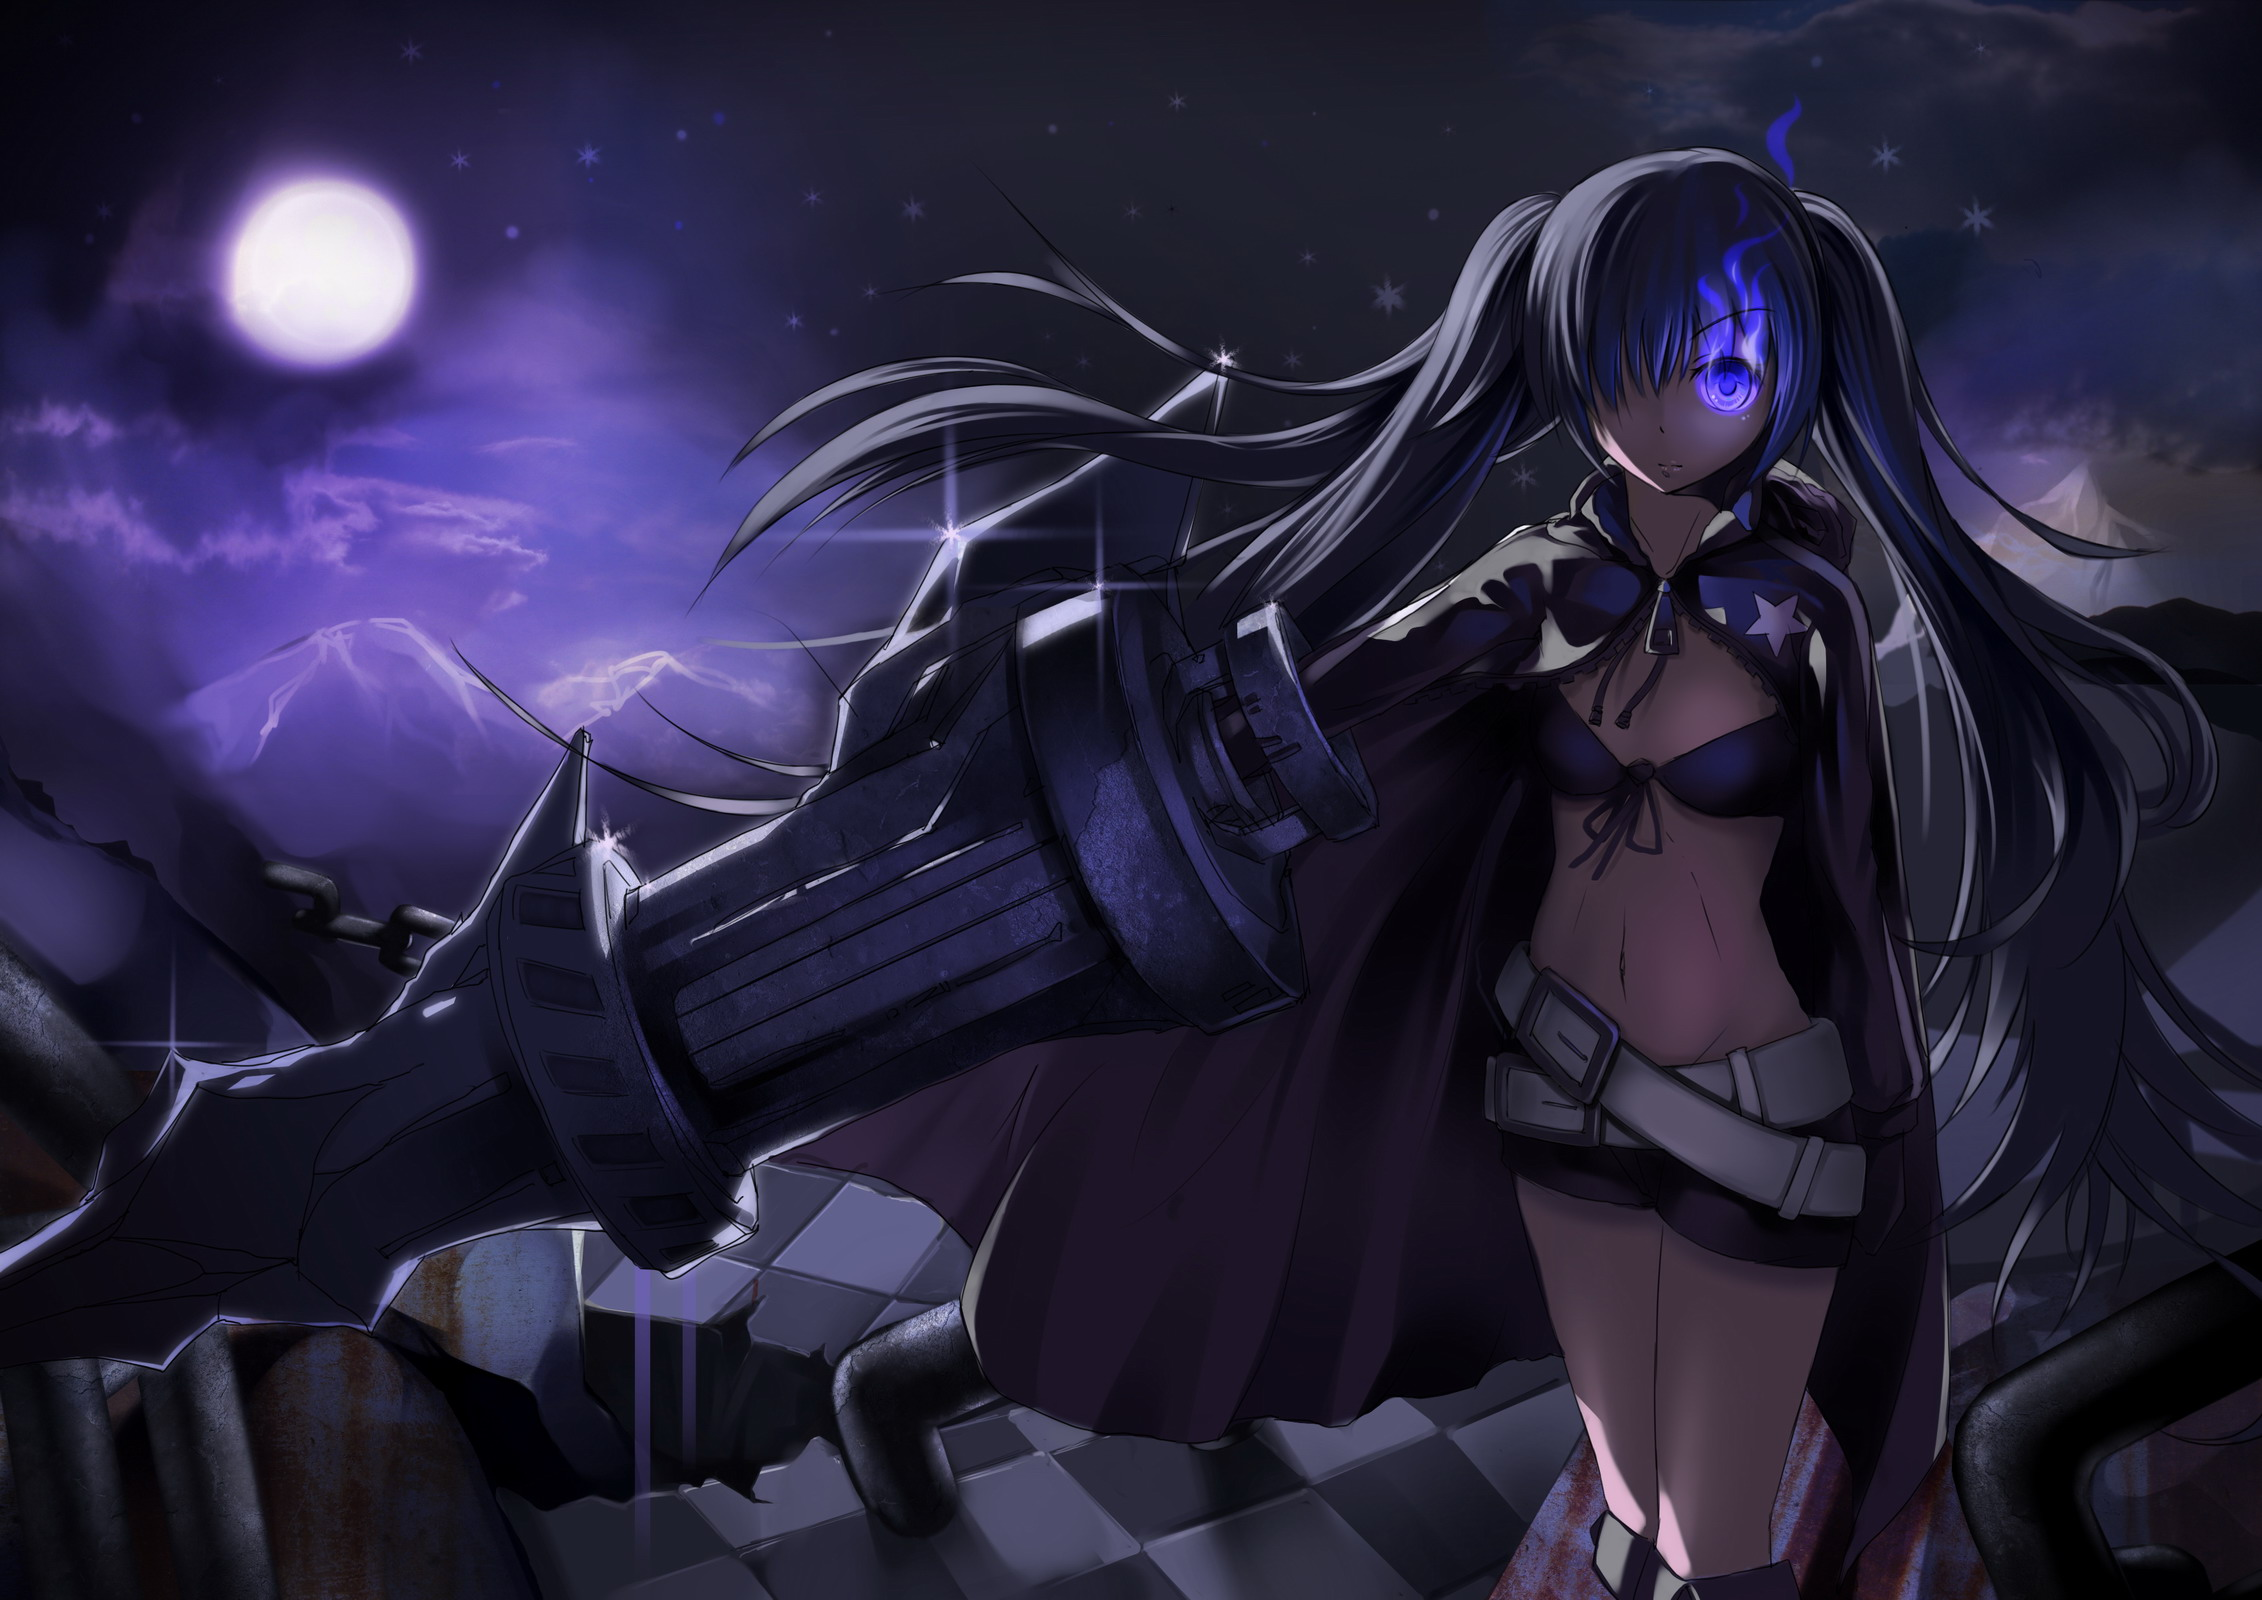 insane black rock shooter a· hd wallpaper background id96371